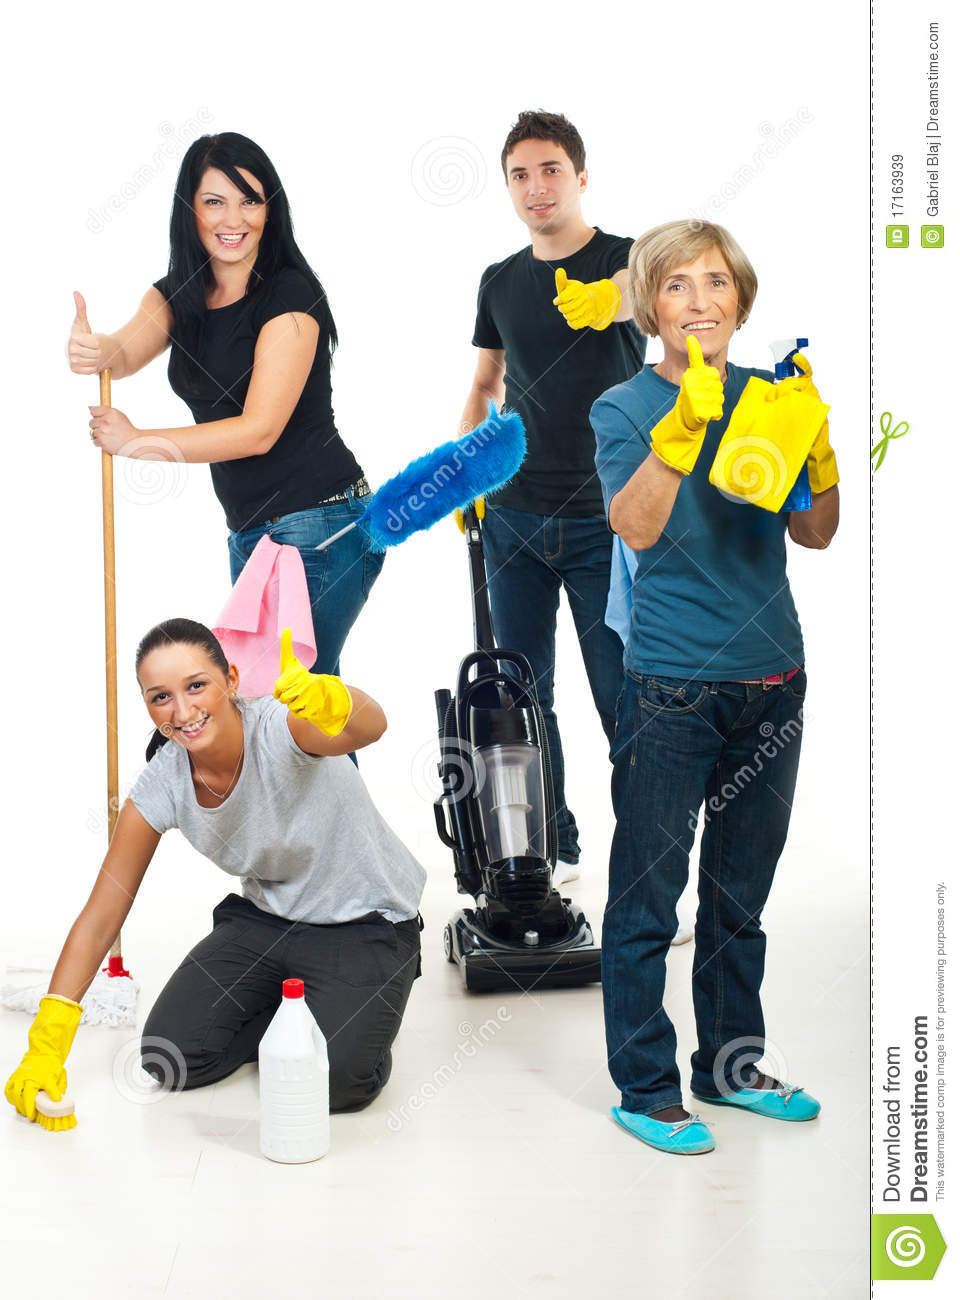 Successful Teamwork Of Cleaning Workers Royalty Free Stock